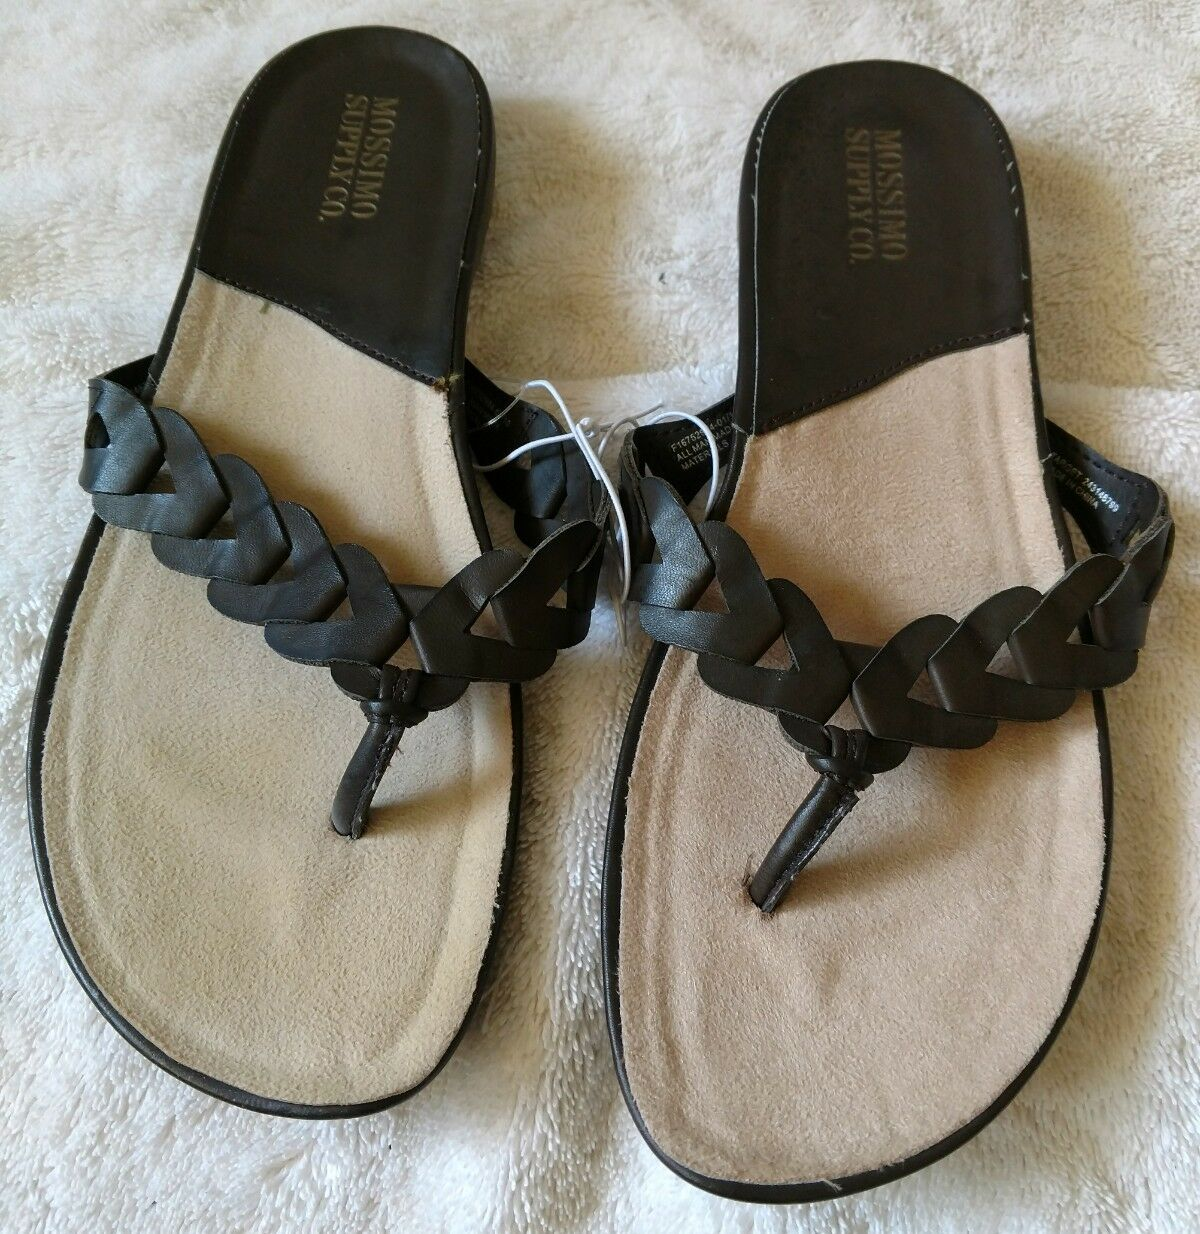 WOMEN'S BROWN T-STRAP SLIDE SANDALS SIZE 7 BRAIDED - STRAP NEW W/O TAGS - BRAIDED MOSSIMO 43cae1